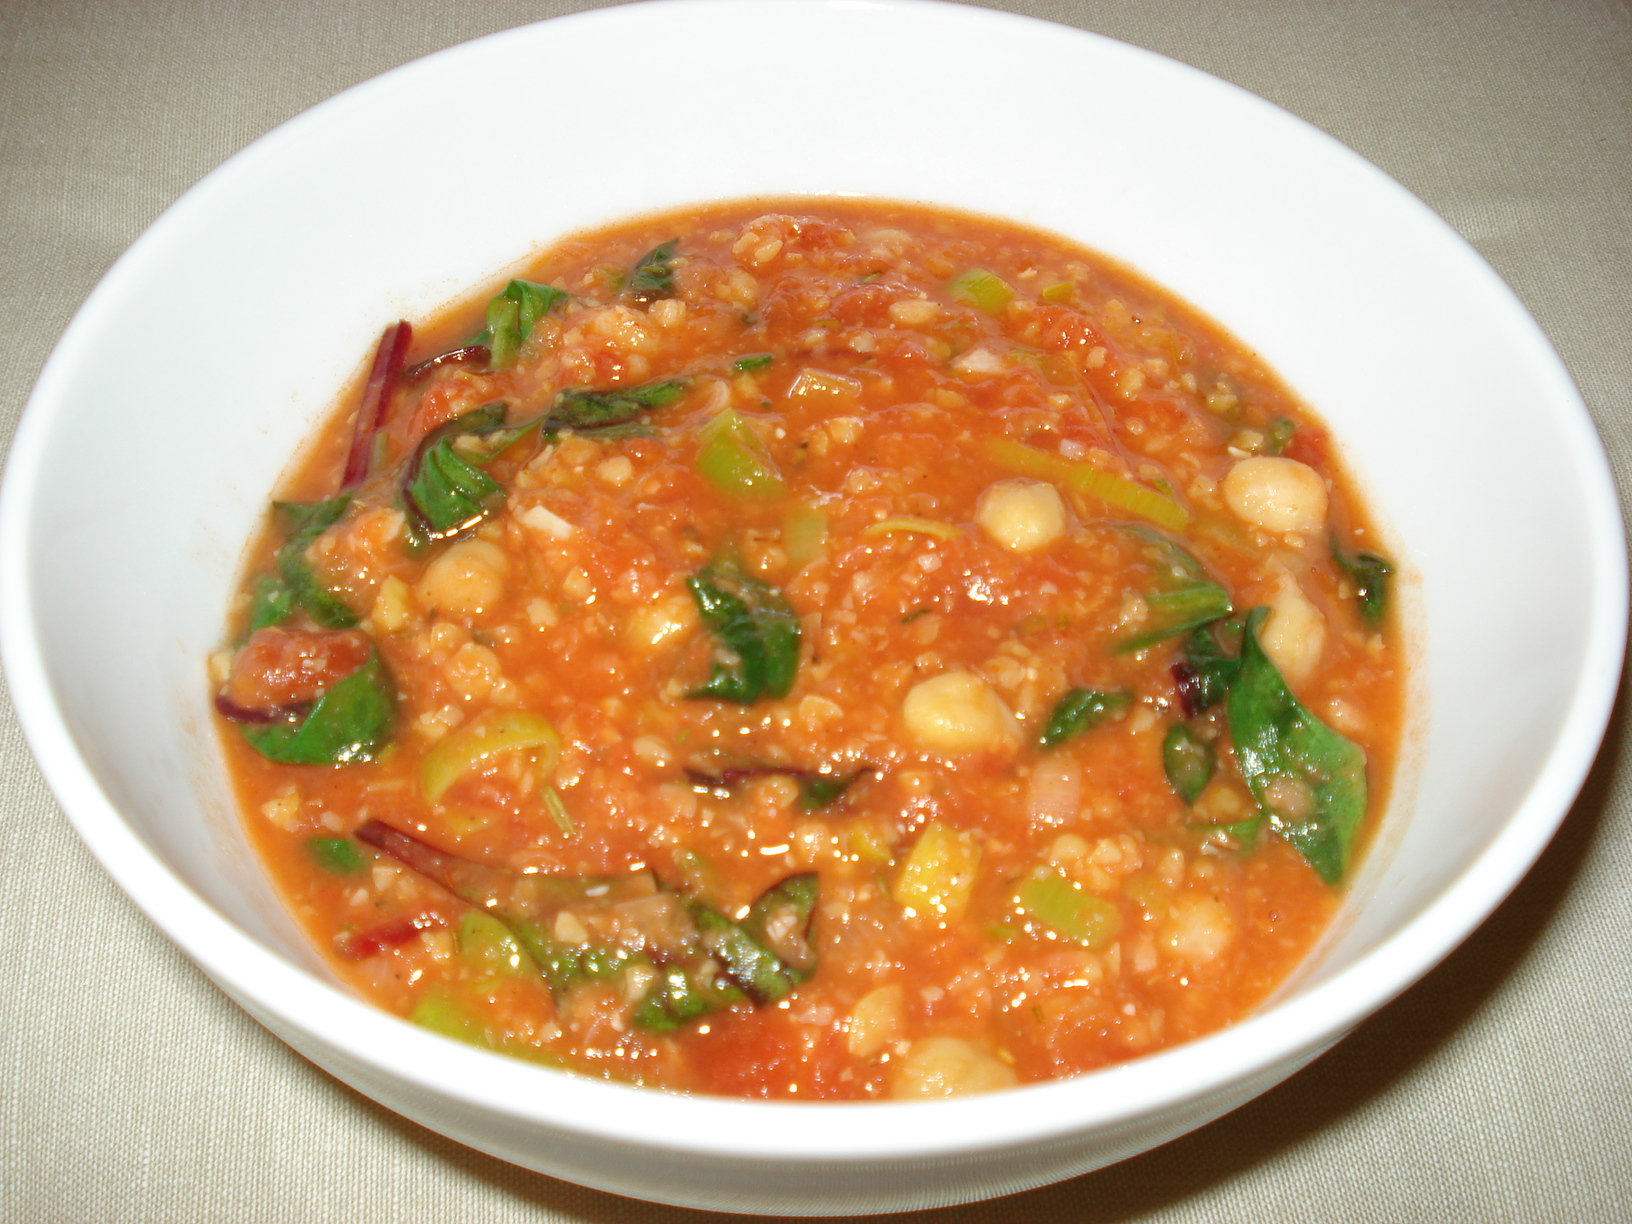 Tomato soup with chickpeas and chard